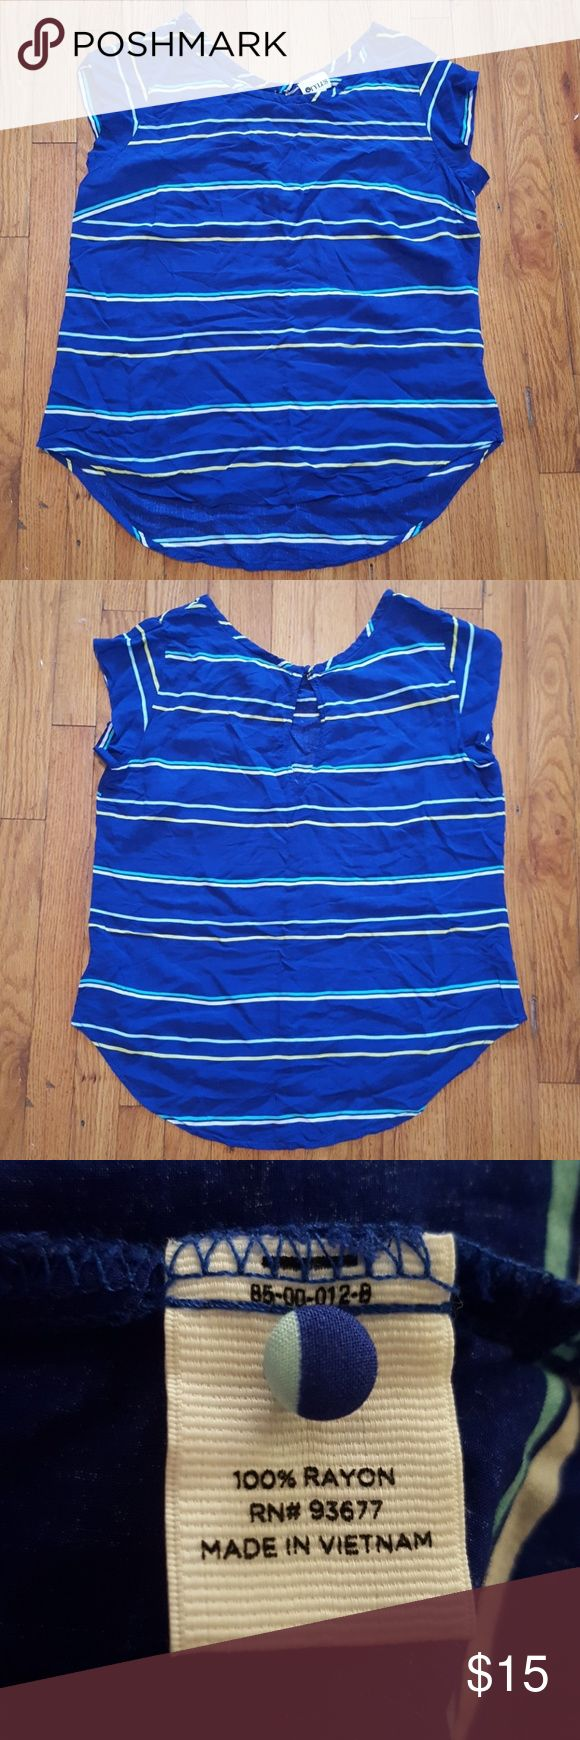 Stylus Striped Blouse Beautiful, royal blue blouse with white, yellow and light blue horizontal stripes. It's 100% rayon and comes with an extra button. Used twice. STYLUS Tops Blouses